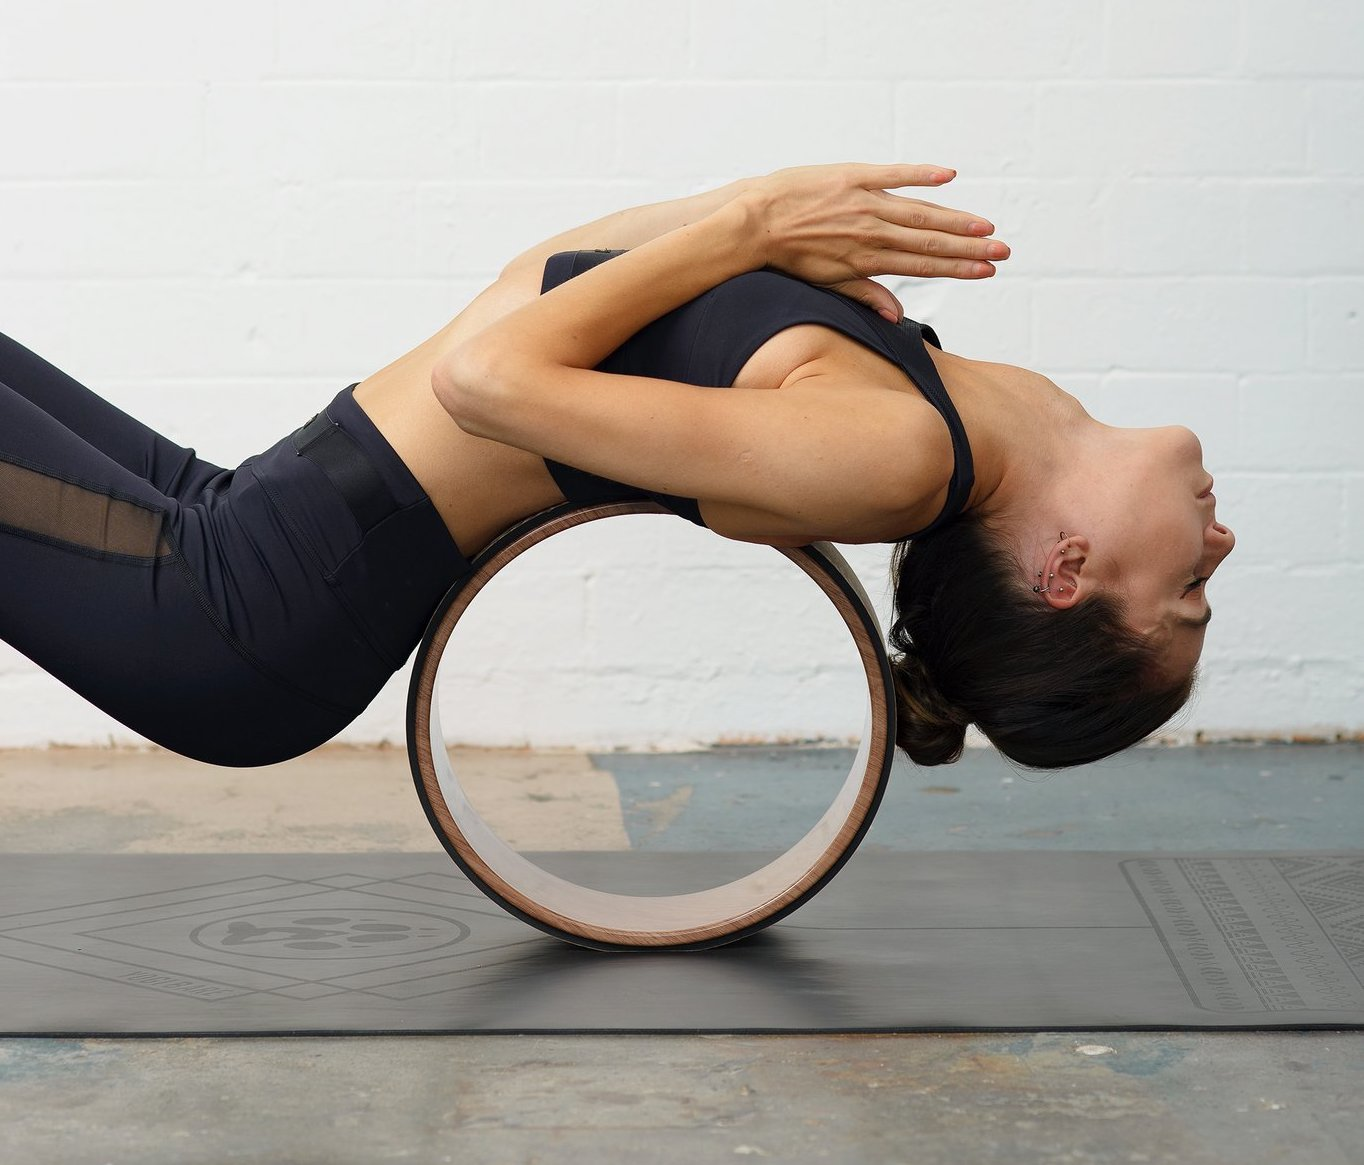 5 Ways To Use A Yoga Wheel For Back Pain